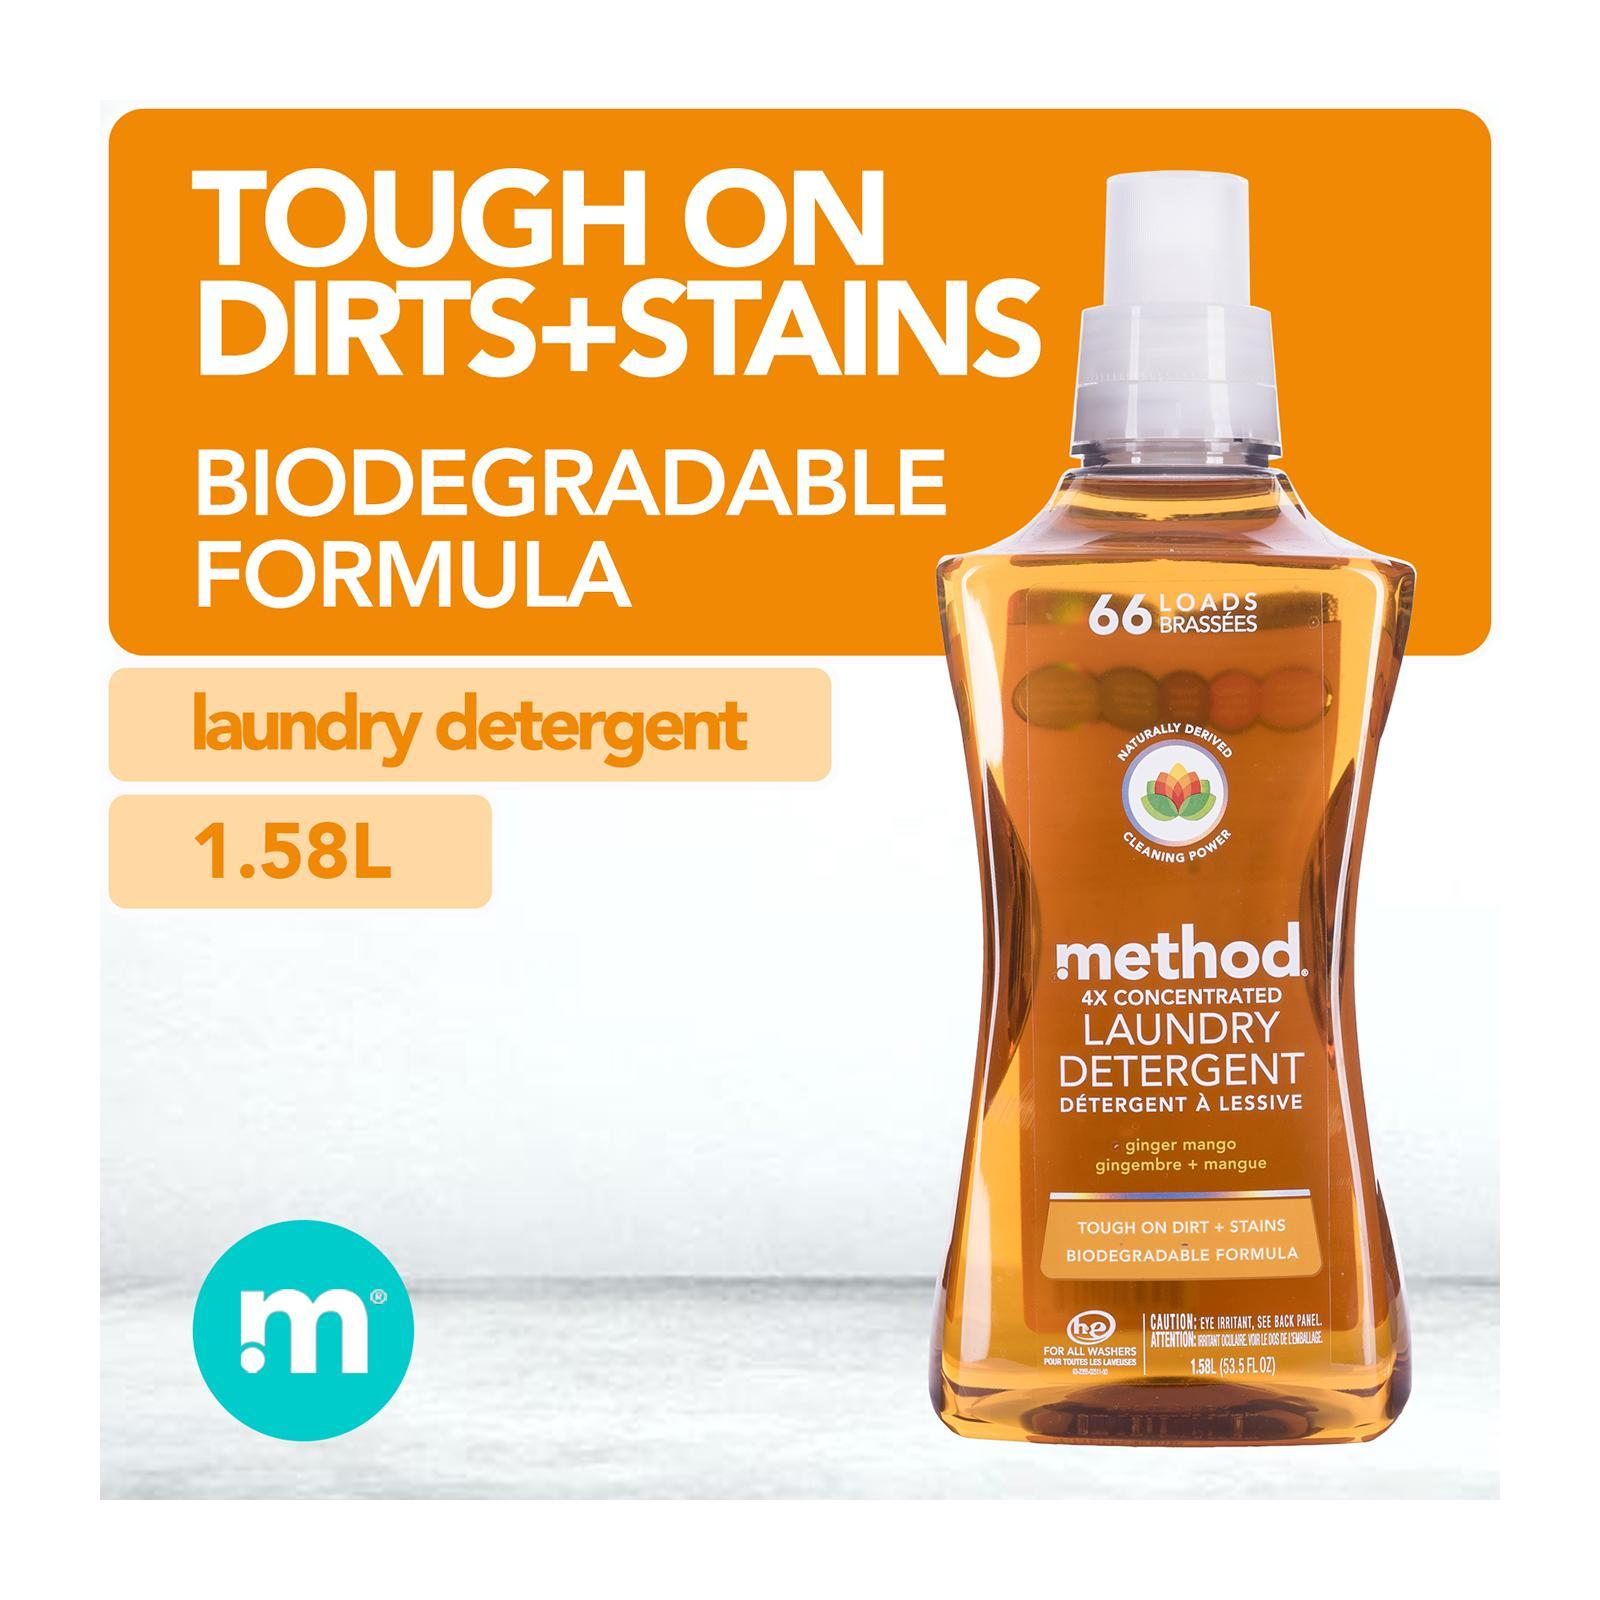 Method 4x Concentrated Laundry Detergent - Ginger Mango (66 Loads)